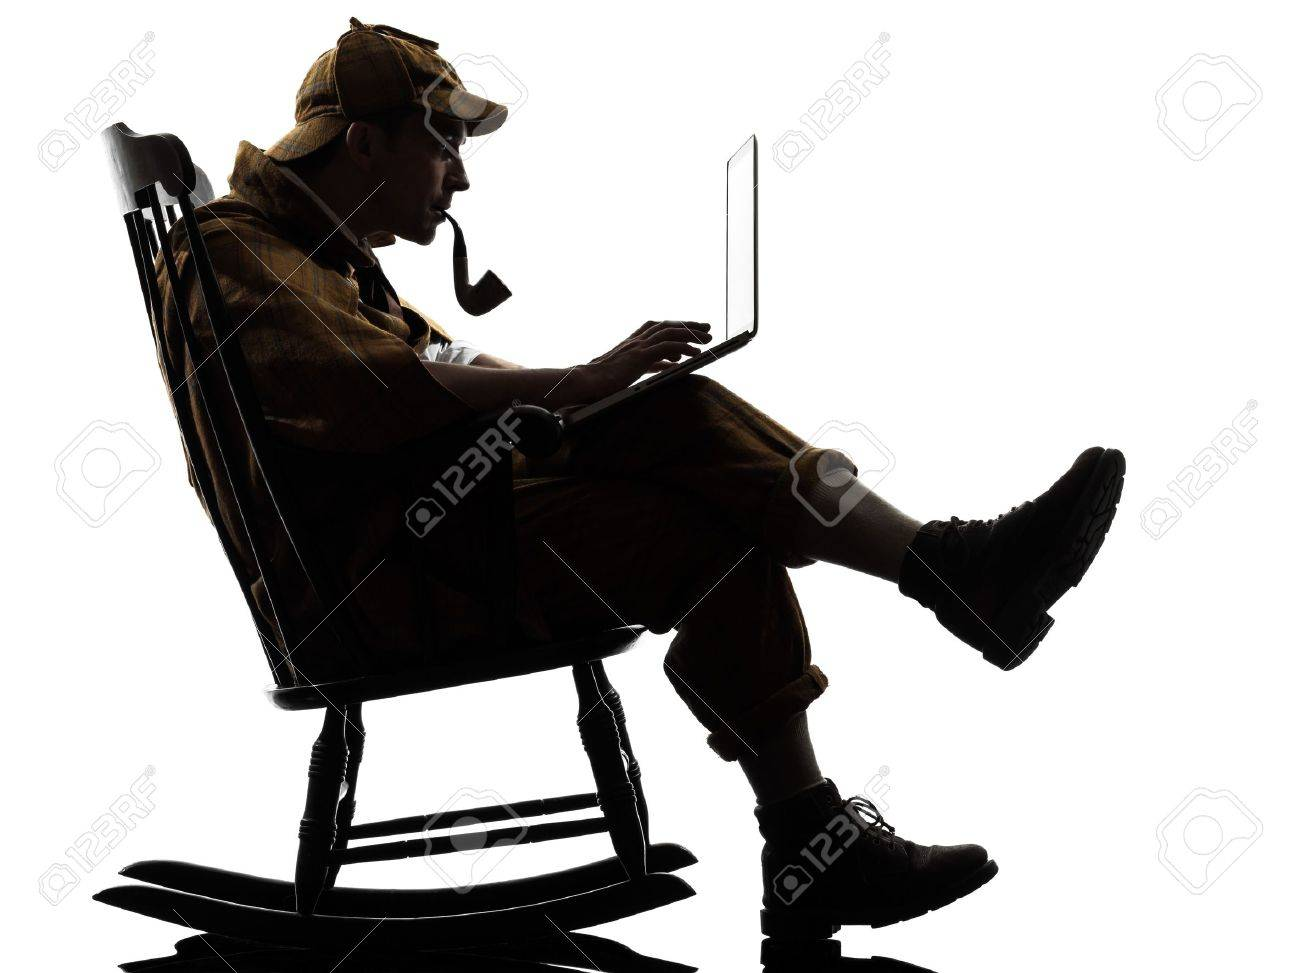 С днем частного сыска 14903551-sherlock-holmes-with-computer-laptop-silhouette-sitting-in-rocking-chair-in-studio-on-white-backgrou-Stock-Photo